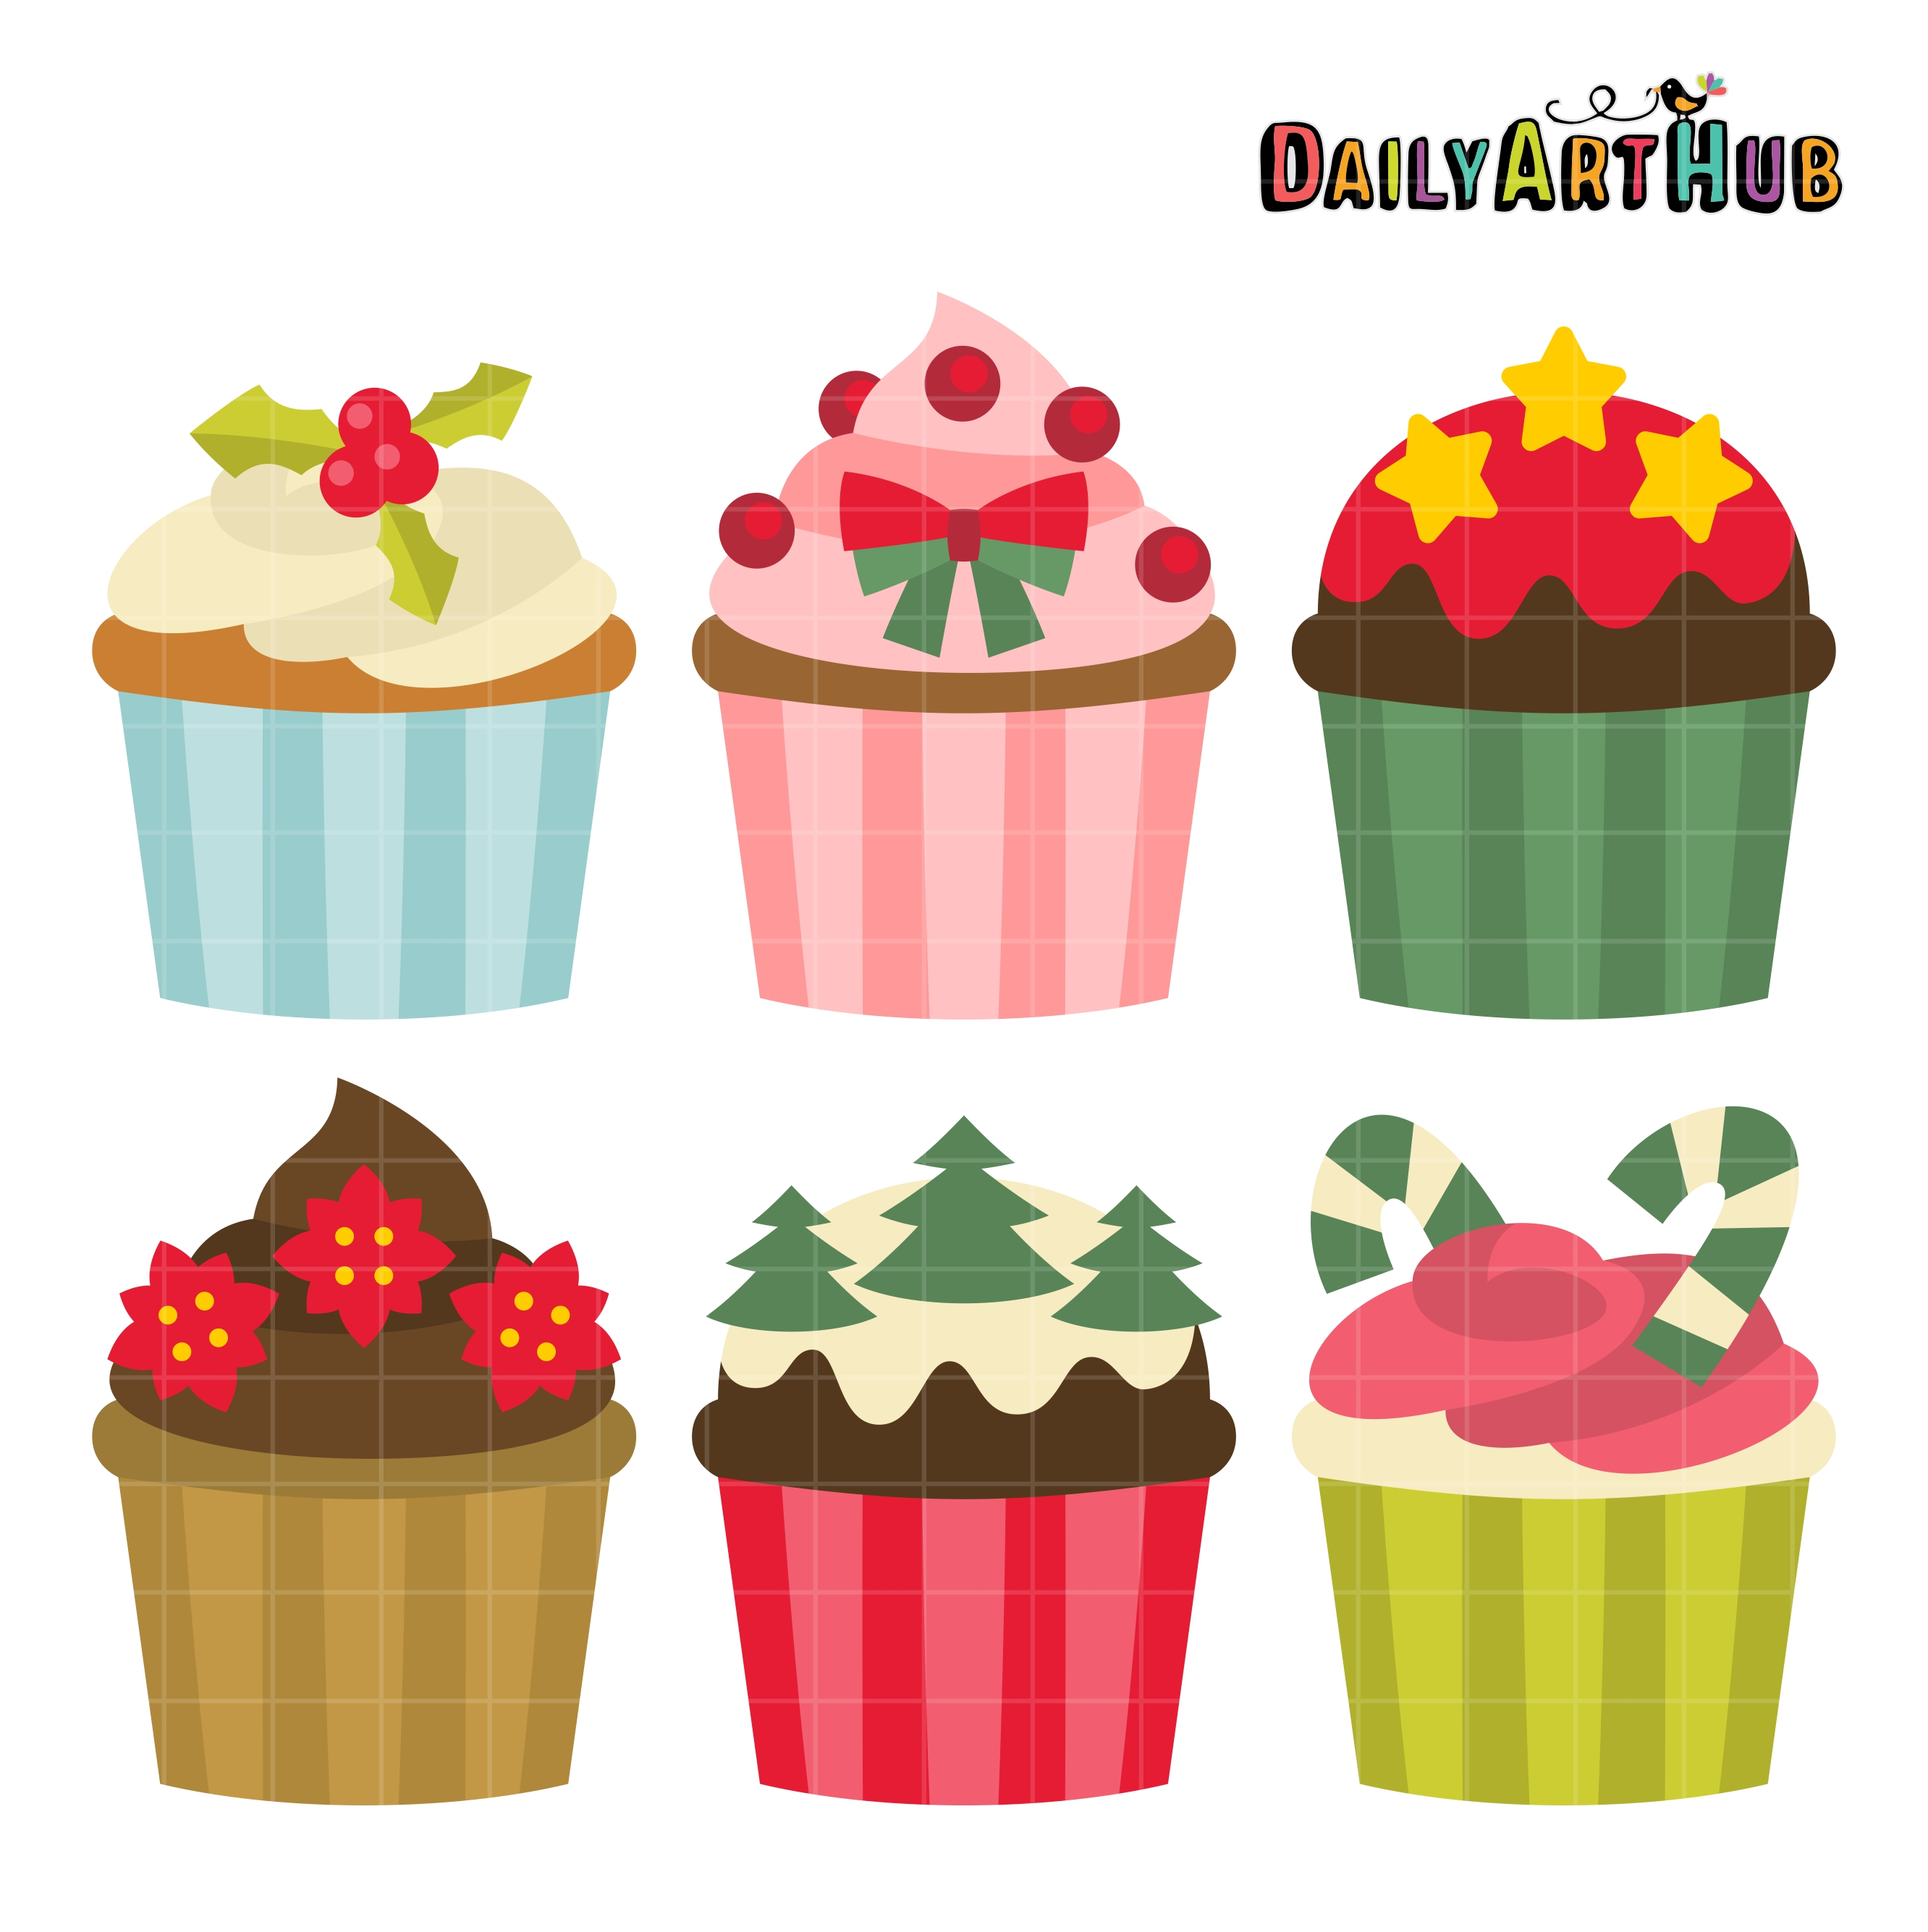 christmas cupcakes clip art set daily art hub free clip art everyday rh dailyarthub com christmas food drive clipart christmas food clipart free